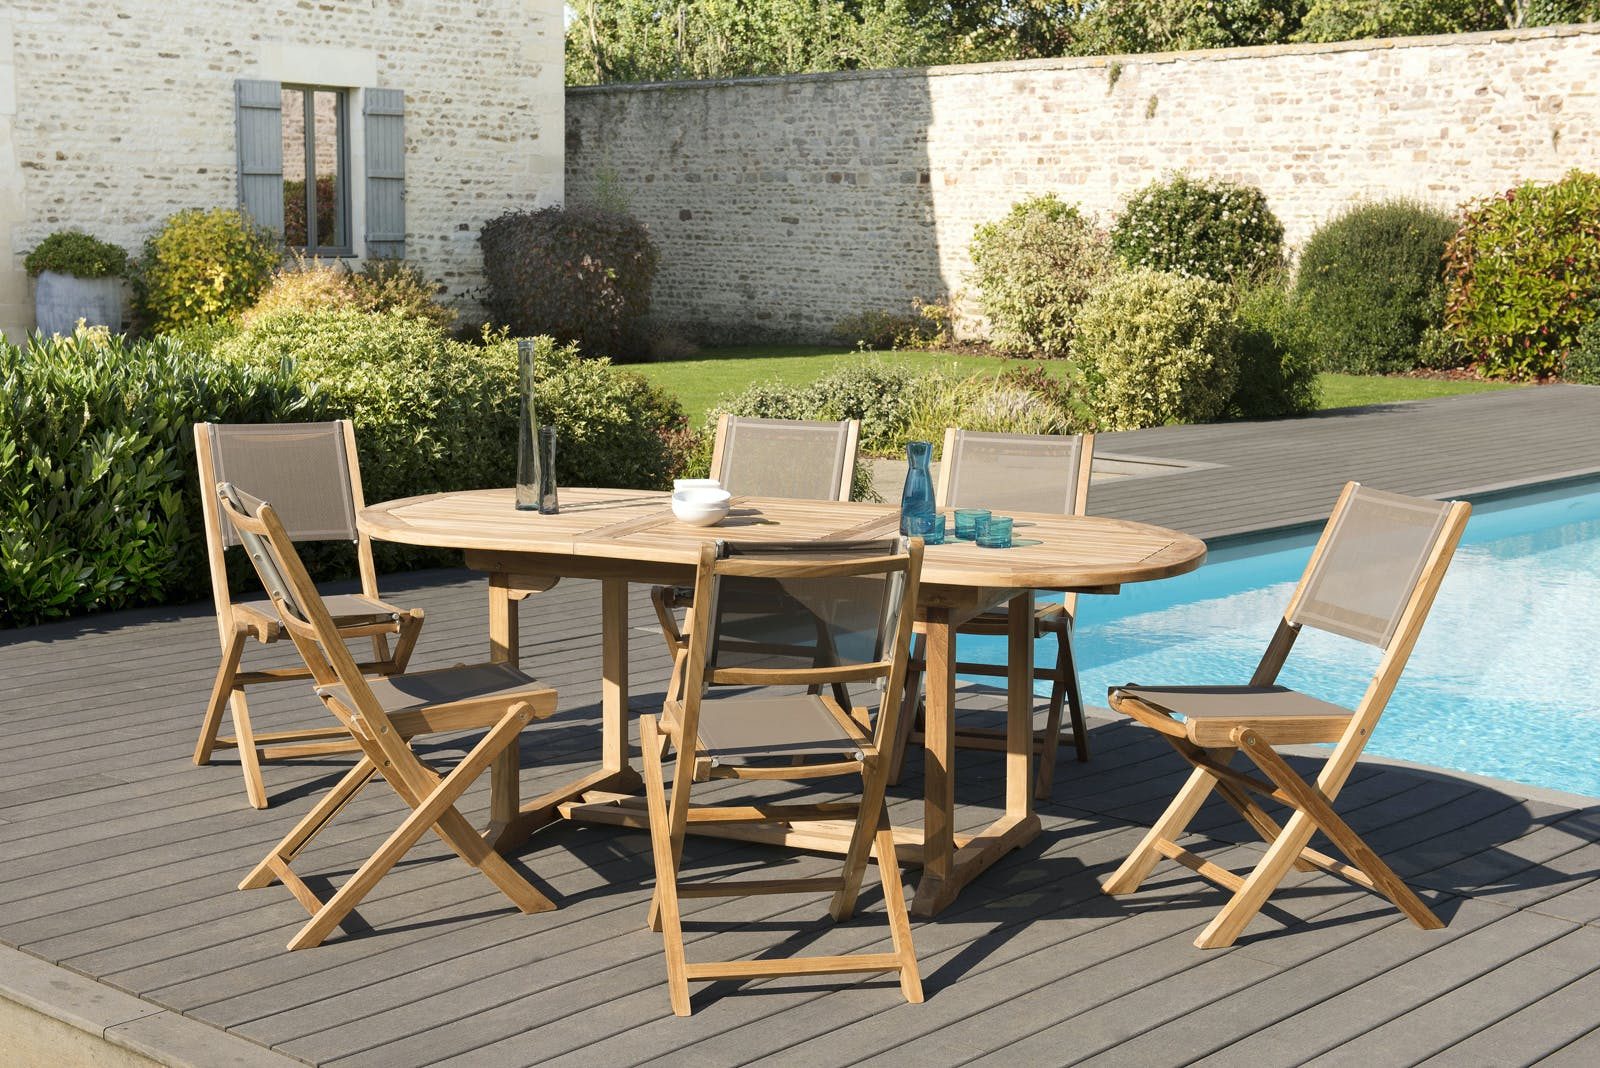 Salon de Jardin Table Teck 150/200cm + 6 Chaises pliantes SUMMER ref. 30020808